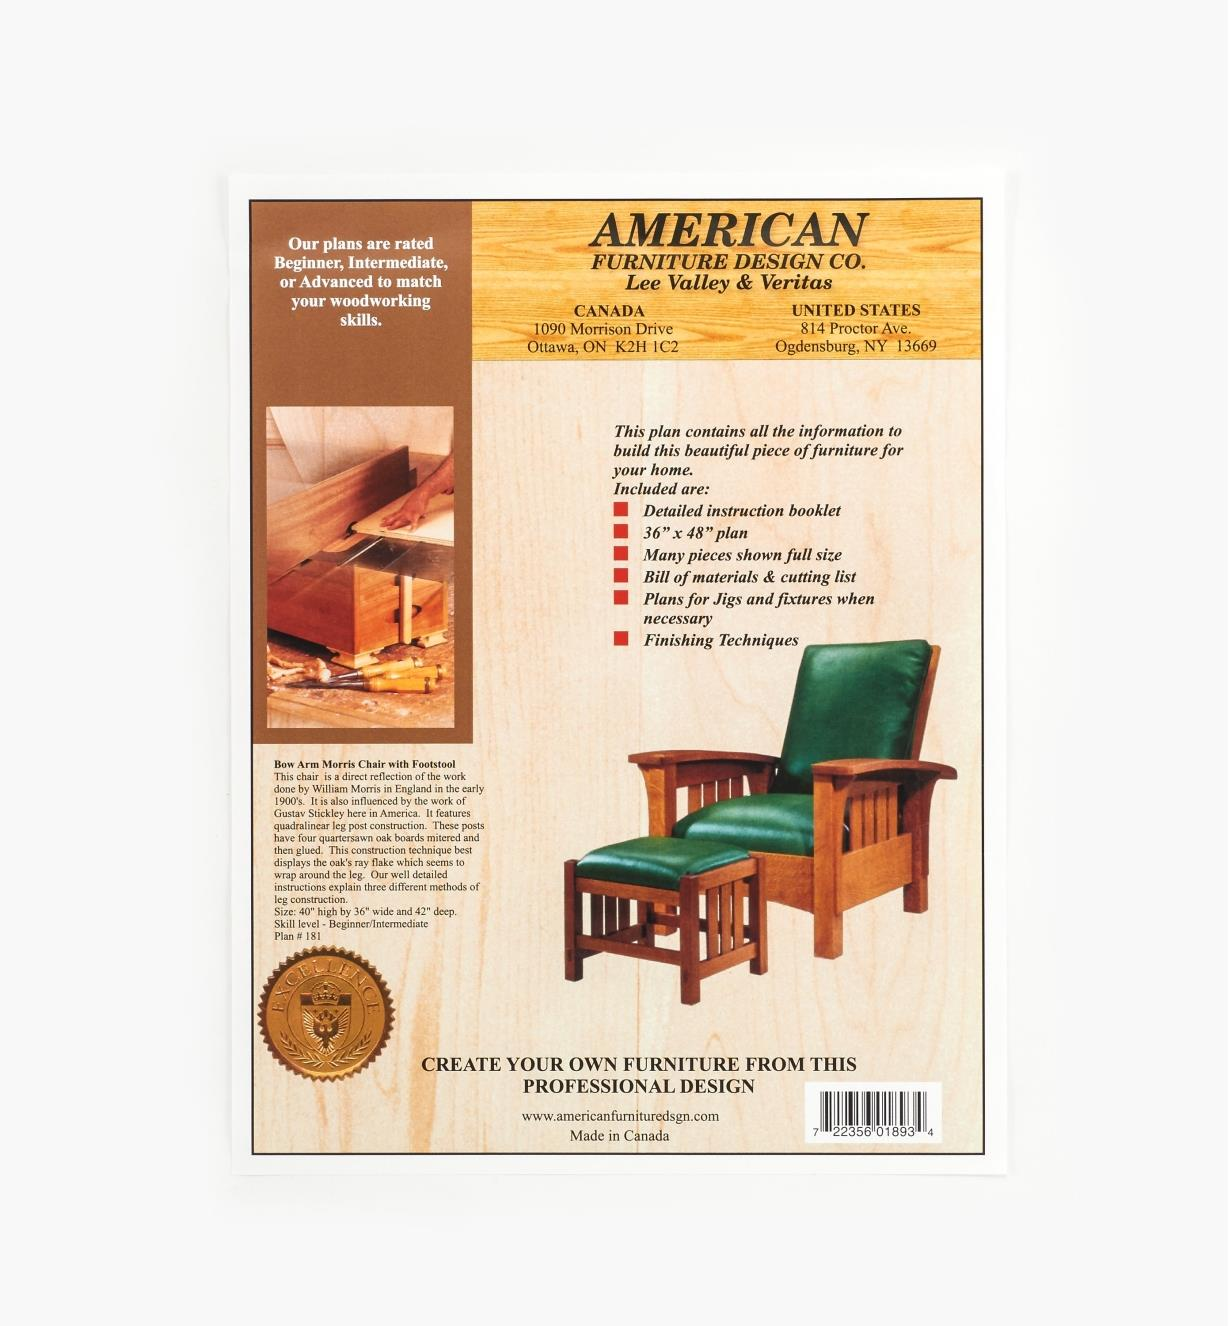 01L5022 - Bow Arm Morris Chair & Footstool Plan